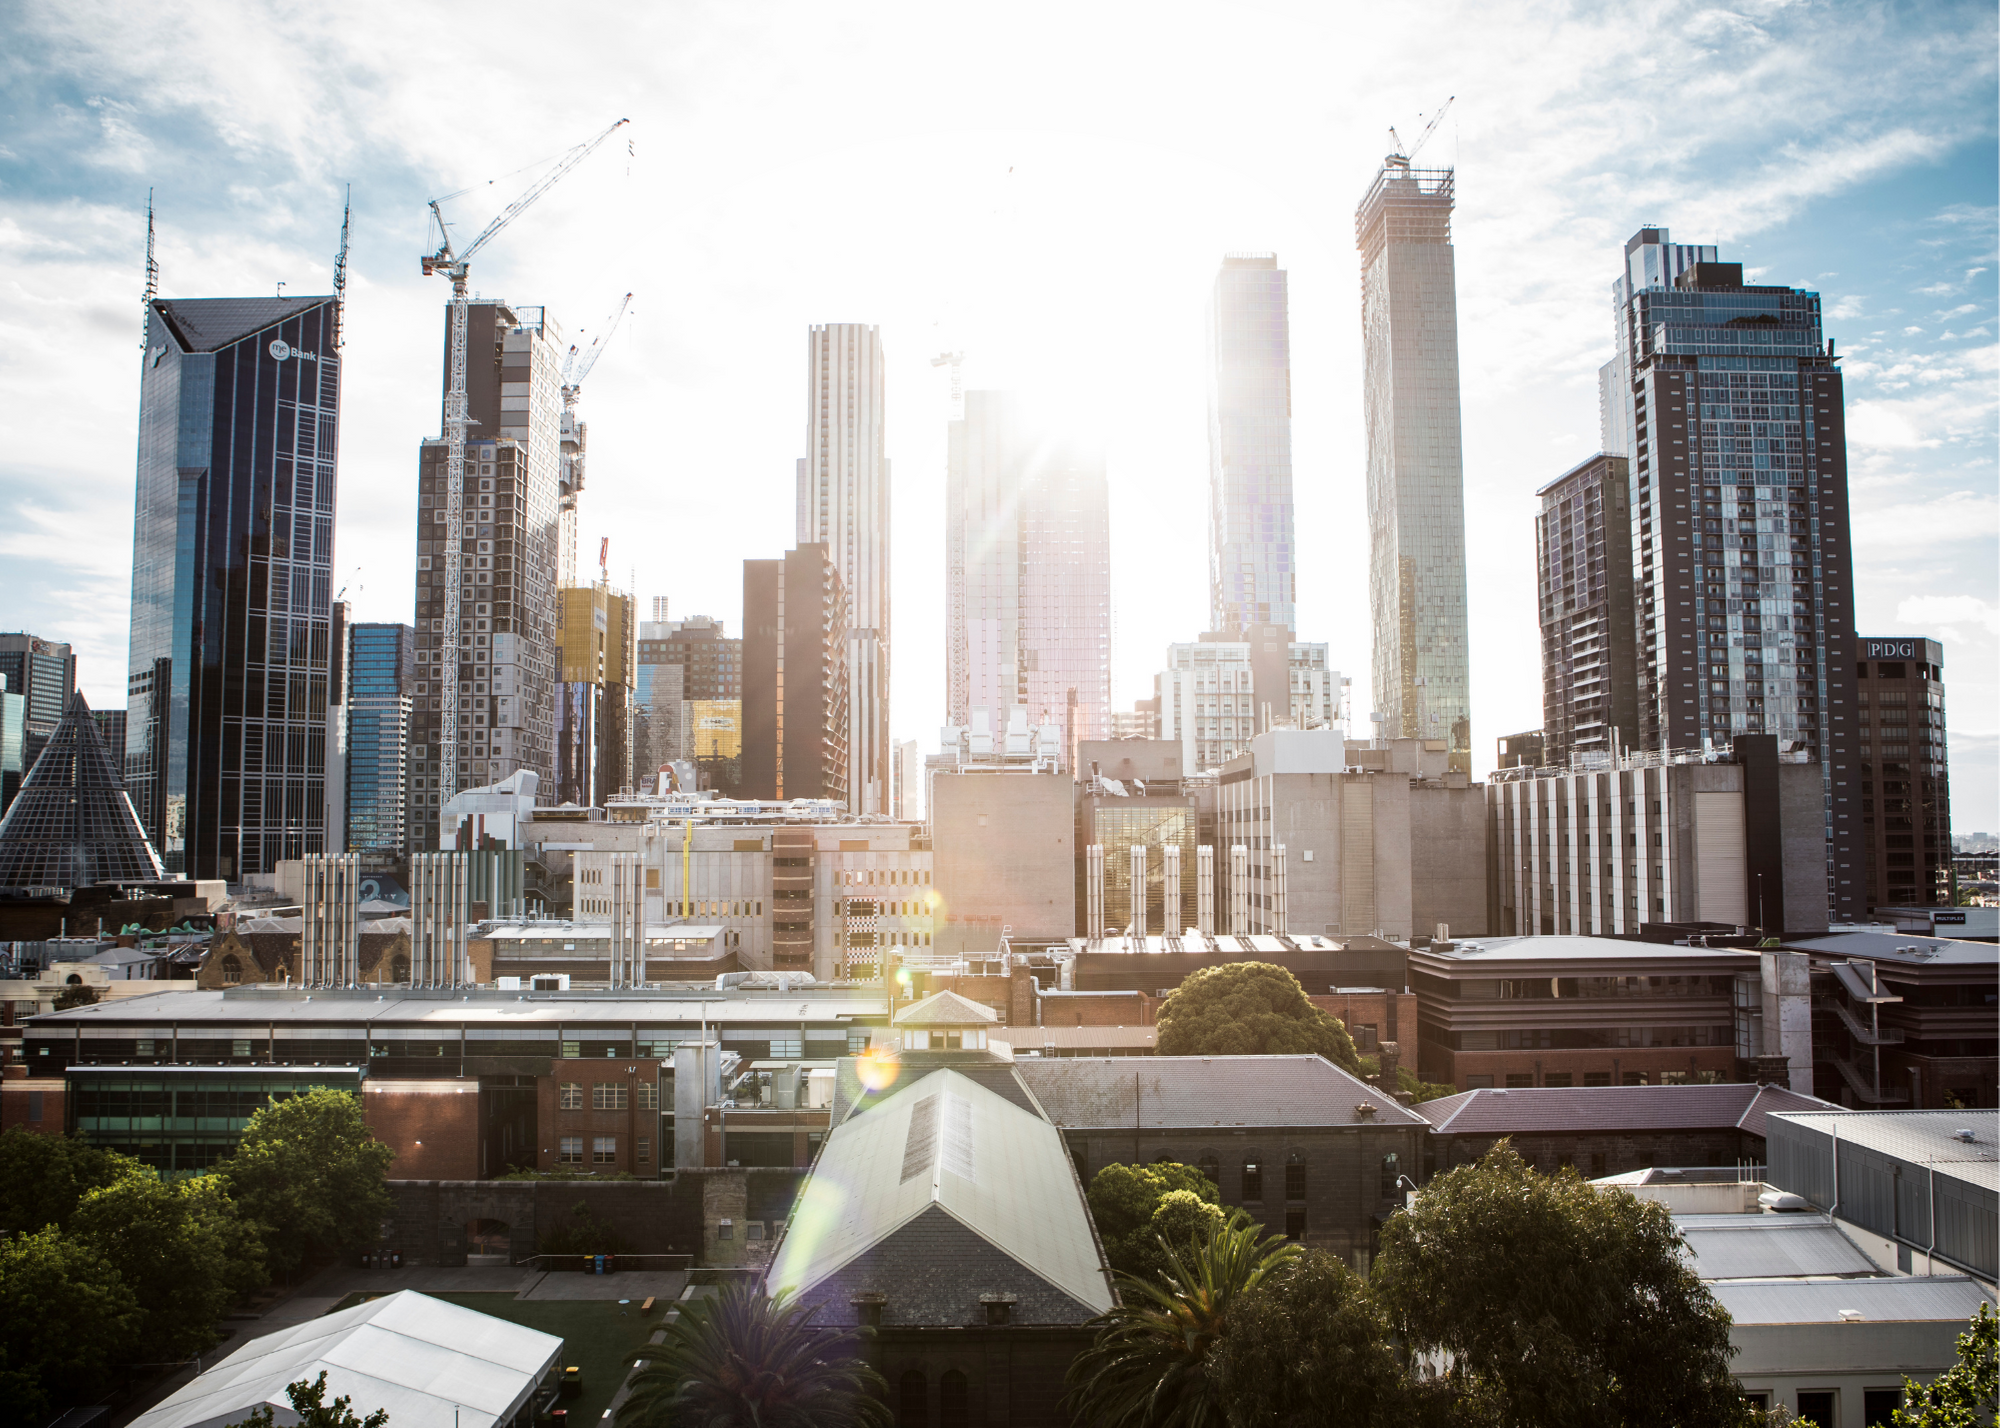 Melbourne soon to become one of the cheapest cities to rent a home in Australia